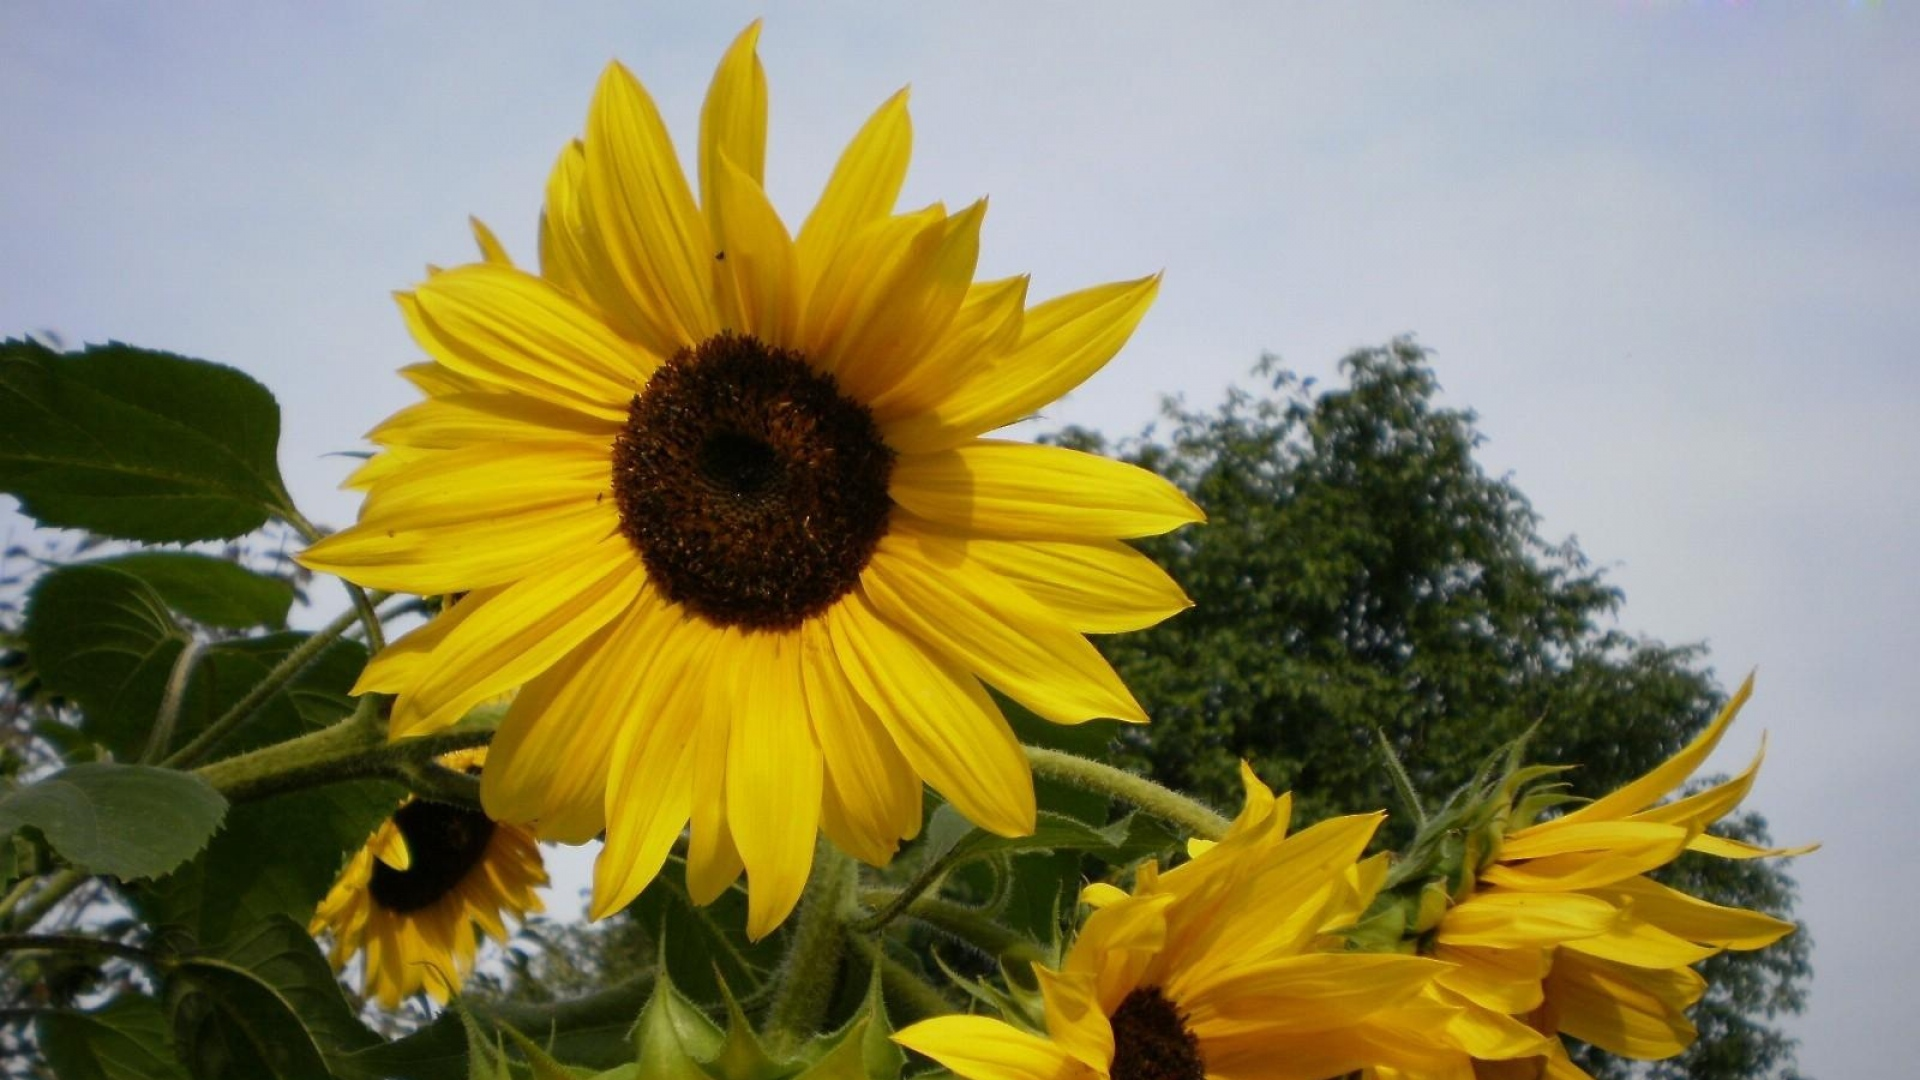 1920x1080-sunflowers-summer-tree-sky-vacation-wallpaper-wpc9001054